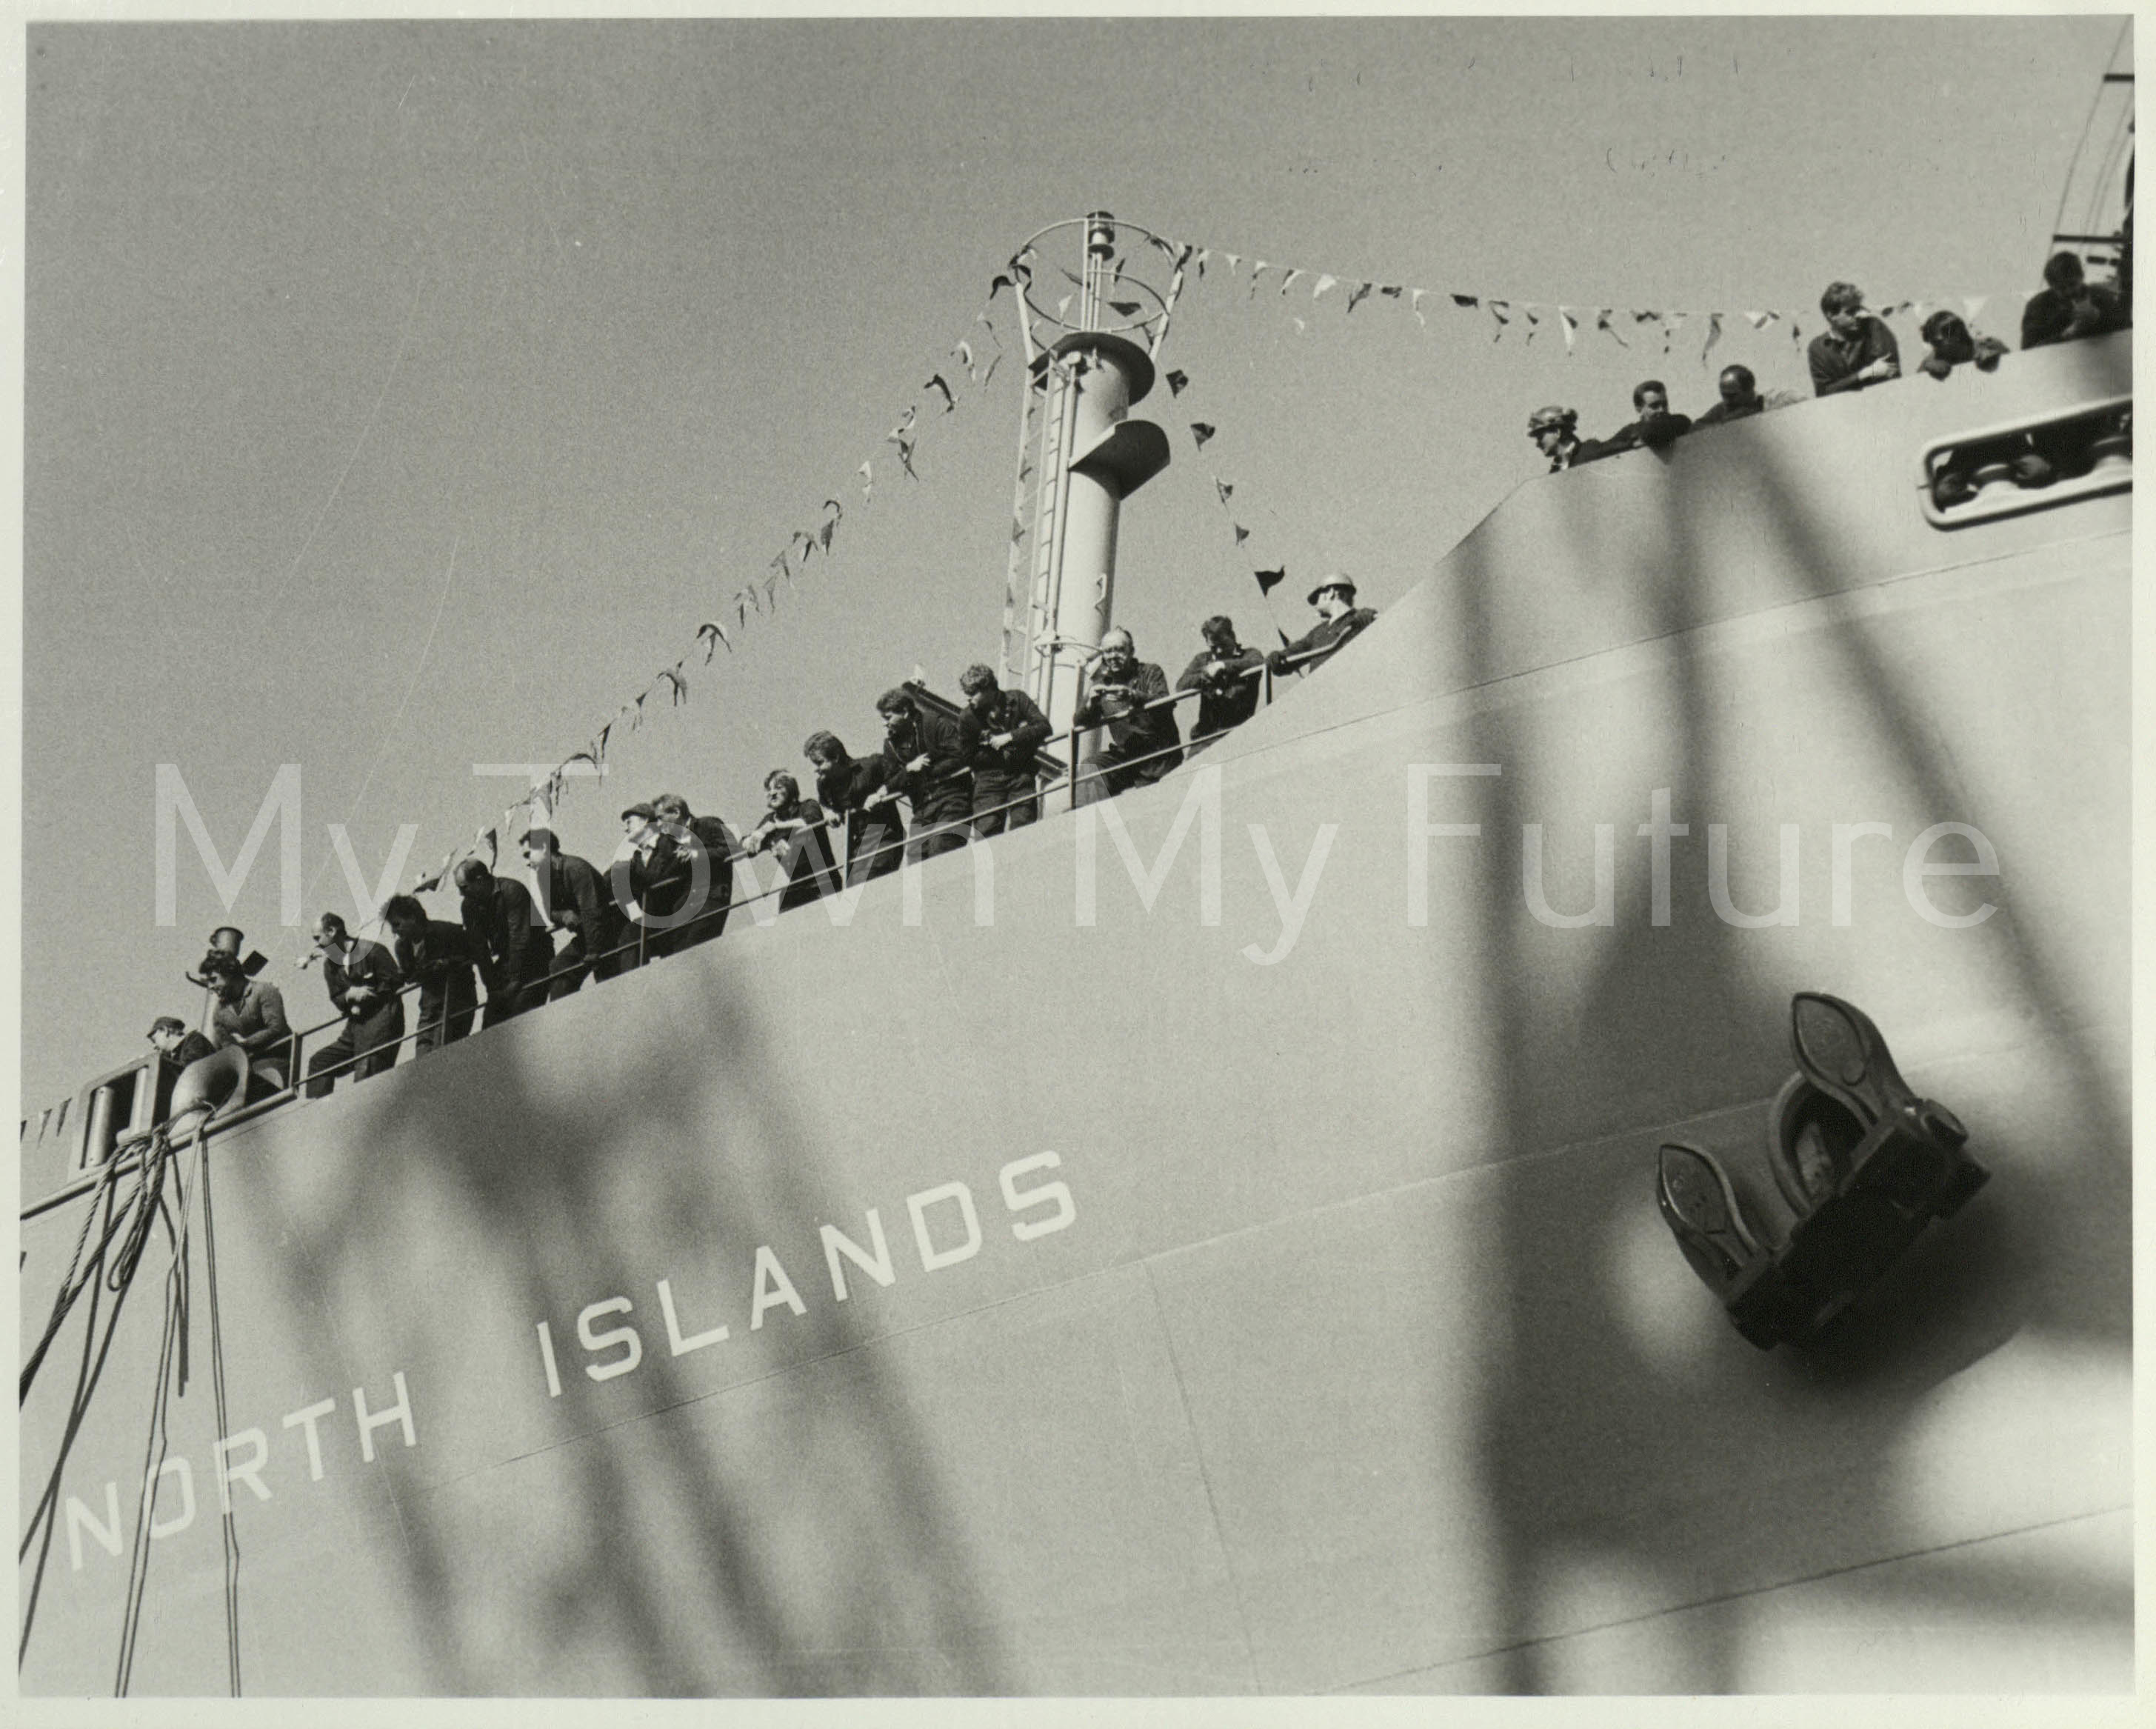 Smith's Dock Ships -North Islands - Last Ship Launched 1986